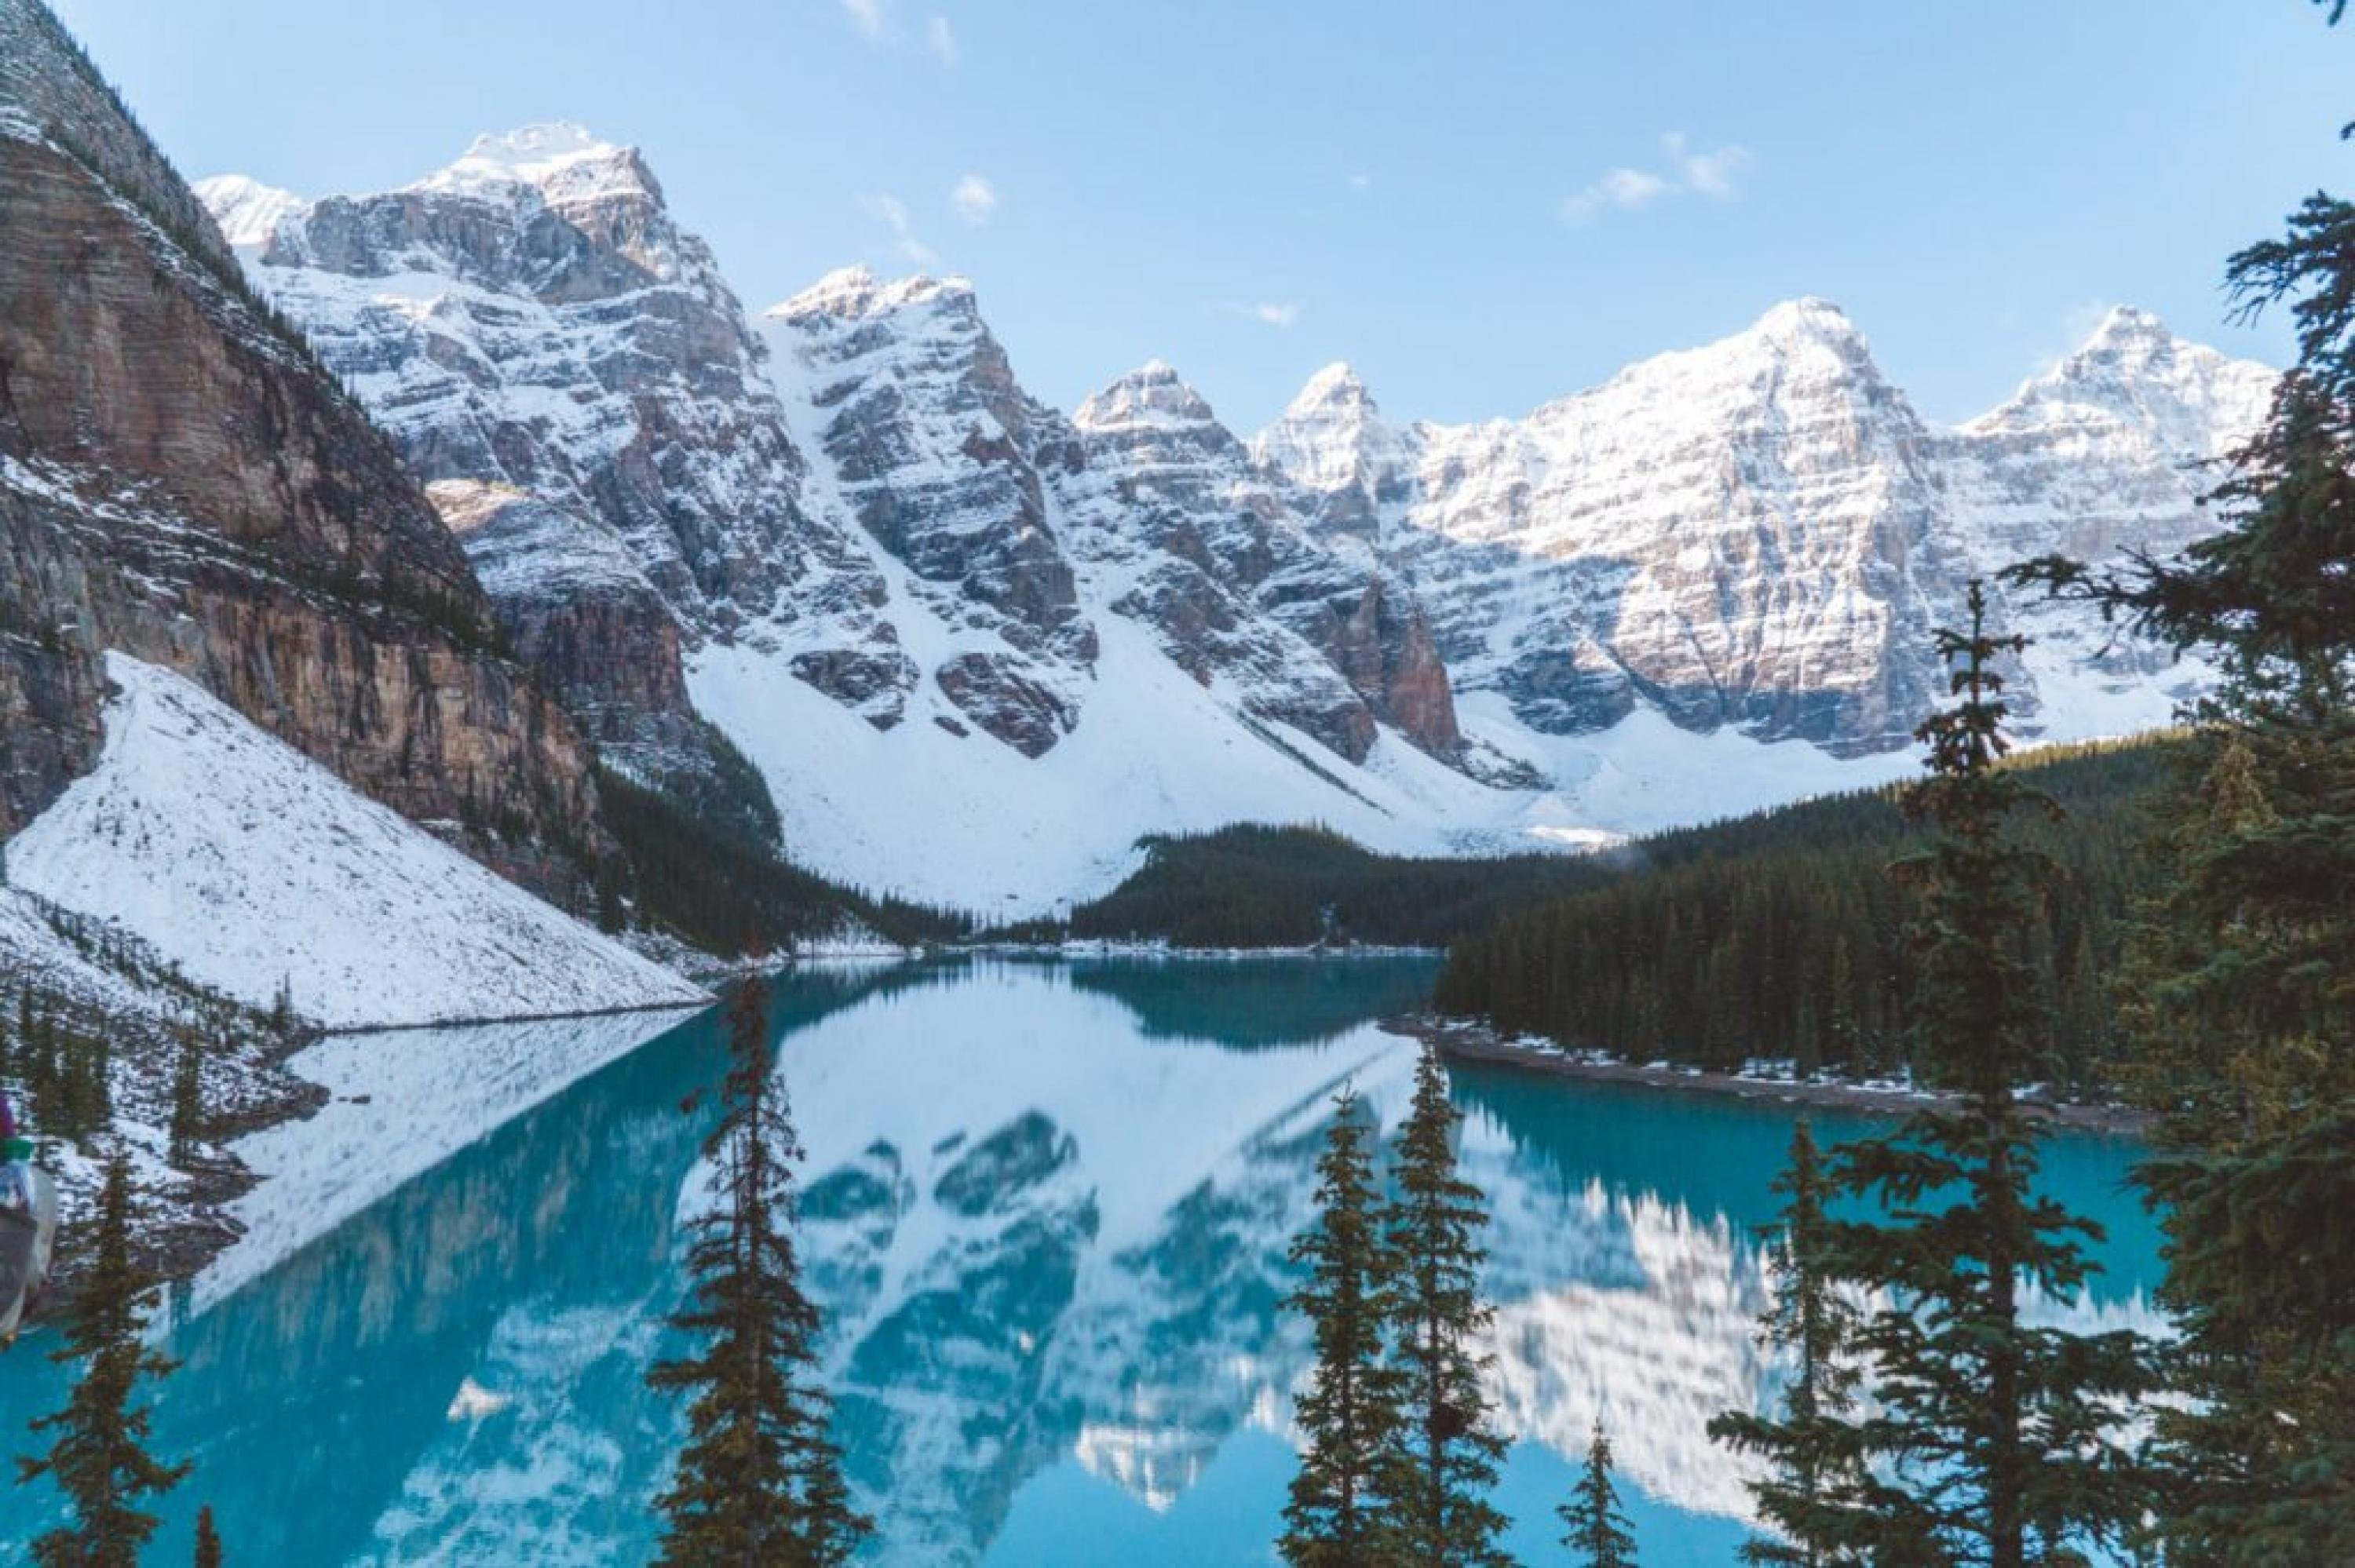 Banff National Park cover photo